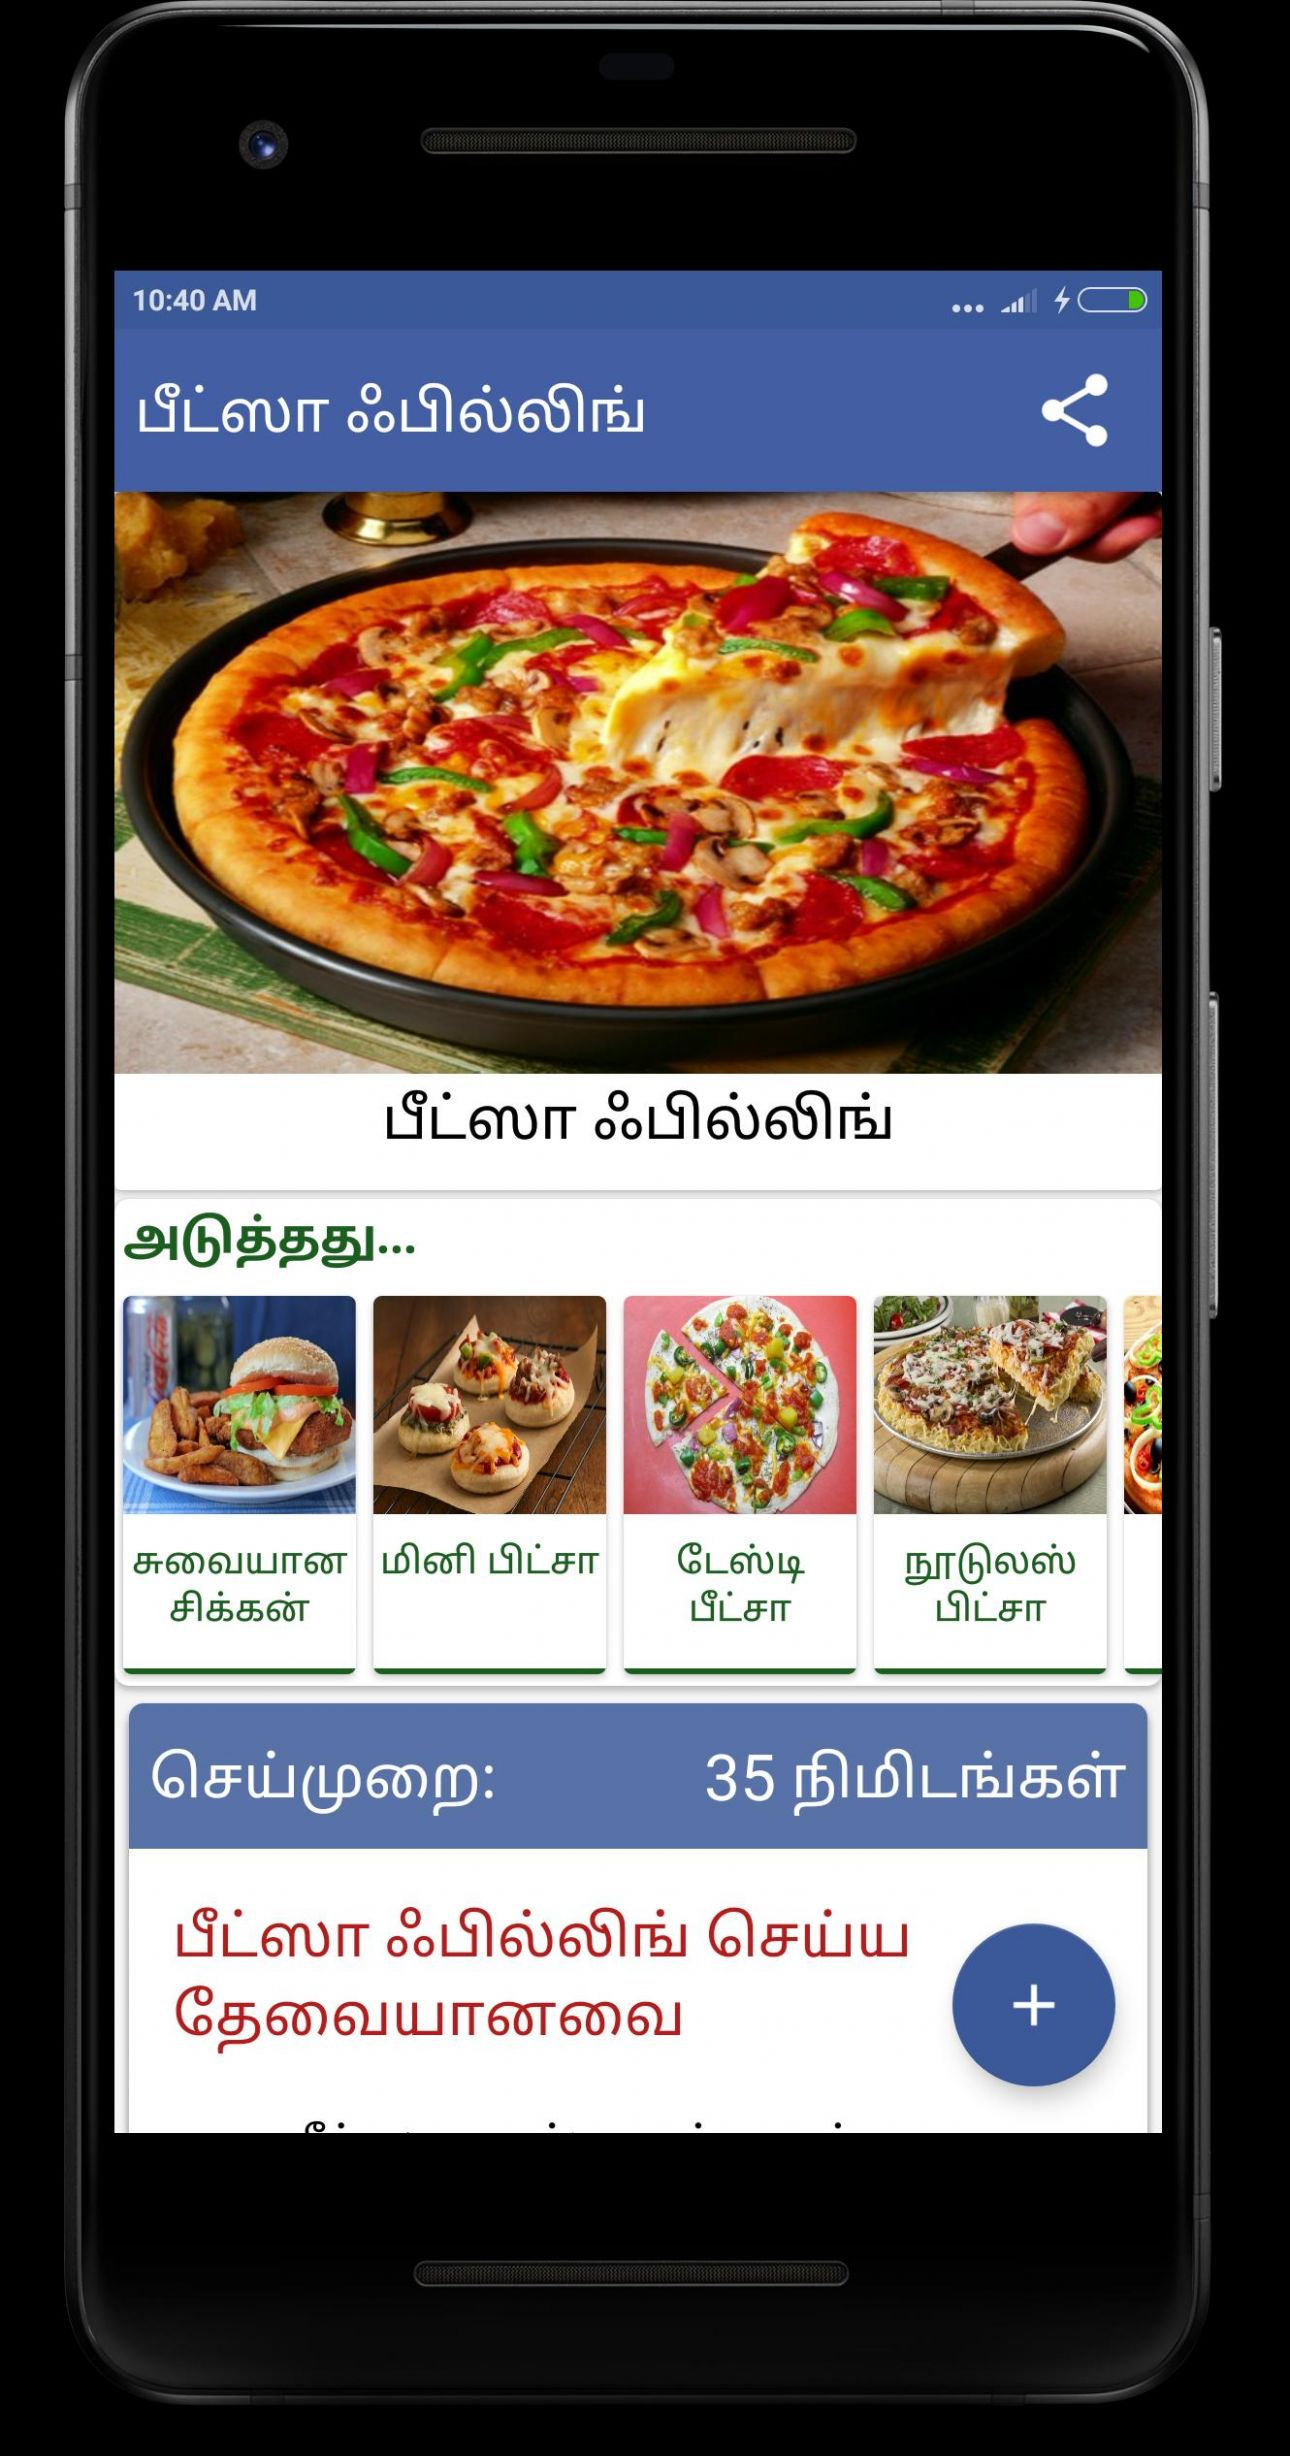 Pizza Burger Recipes in Tamil for Android - APK Download - Pizza Recipes In Tamil